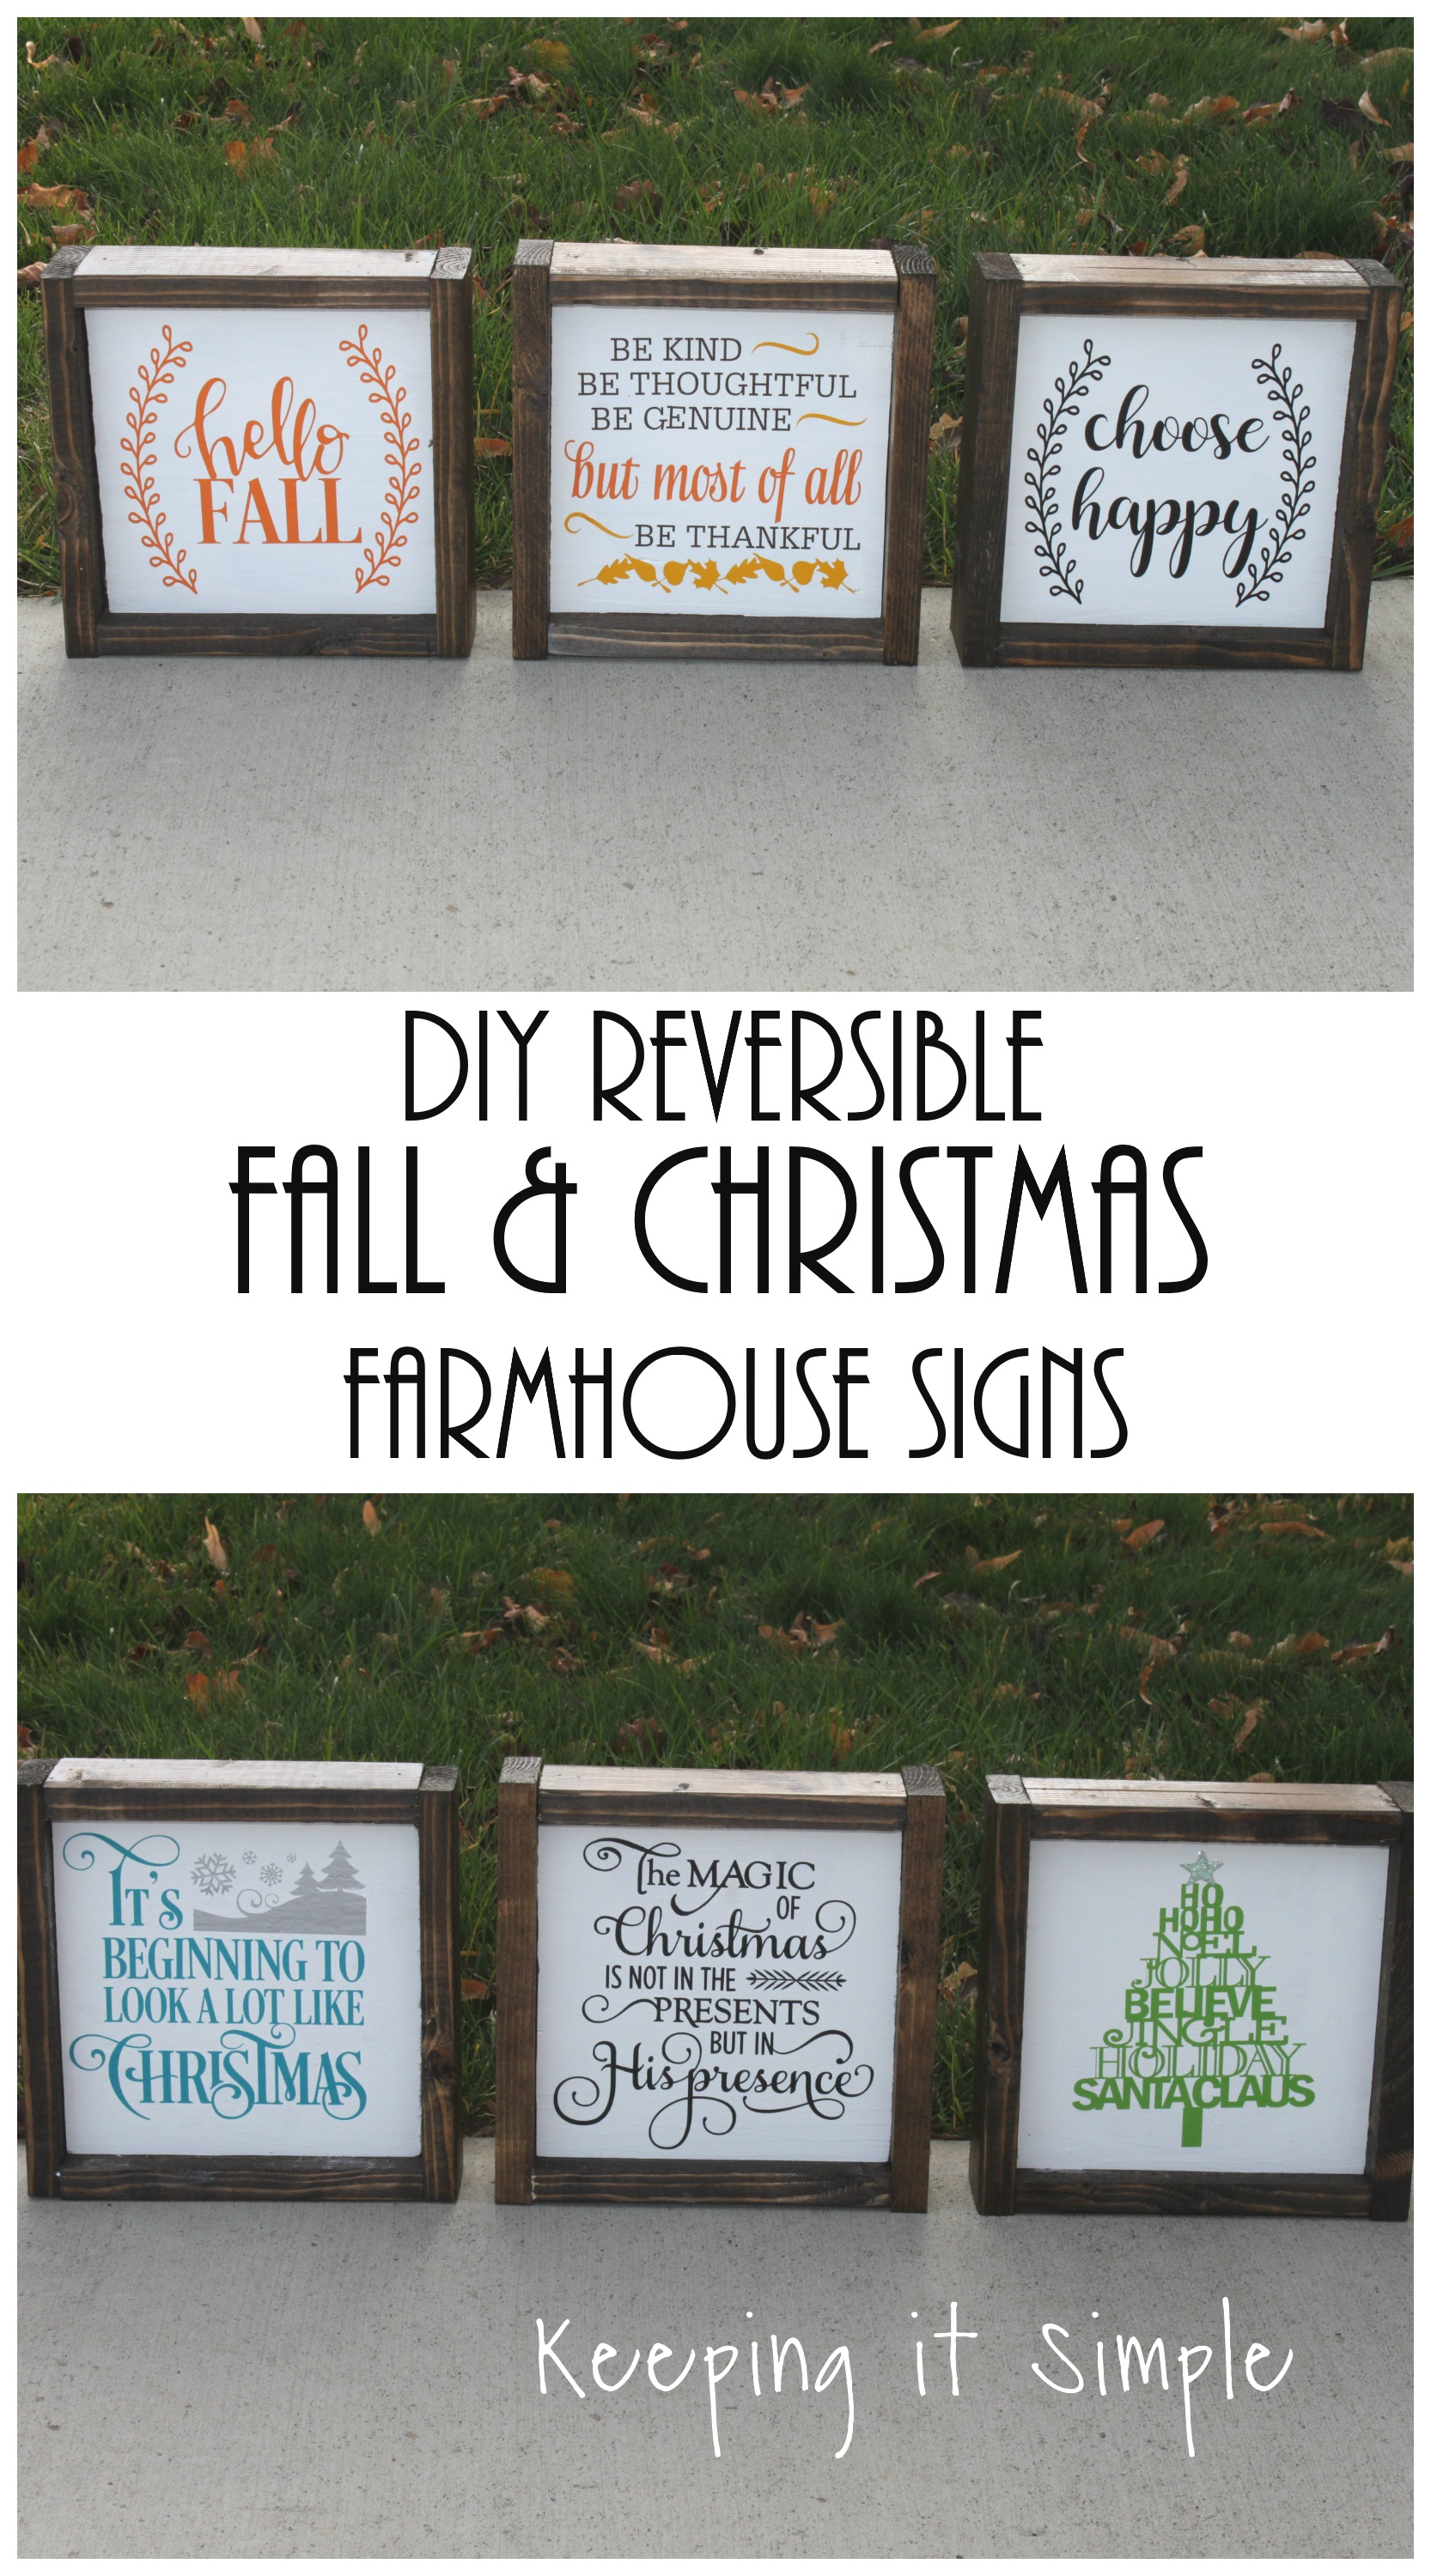 Diy reversible farmhouse sign for fall and christmas for Craft fairs near me november 2017